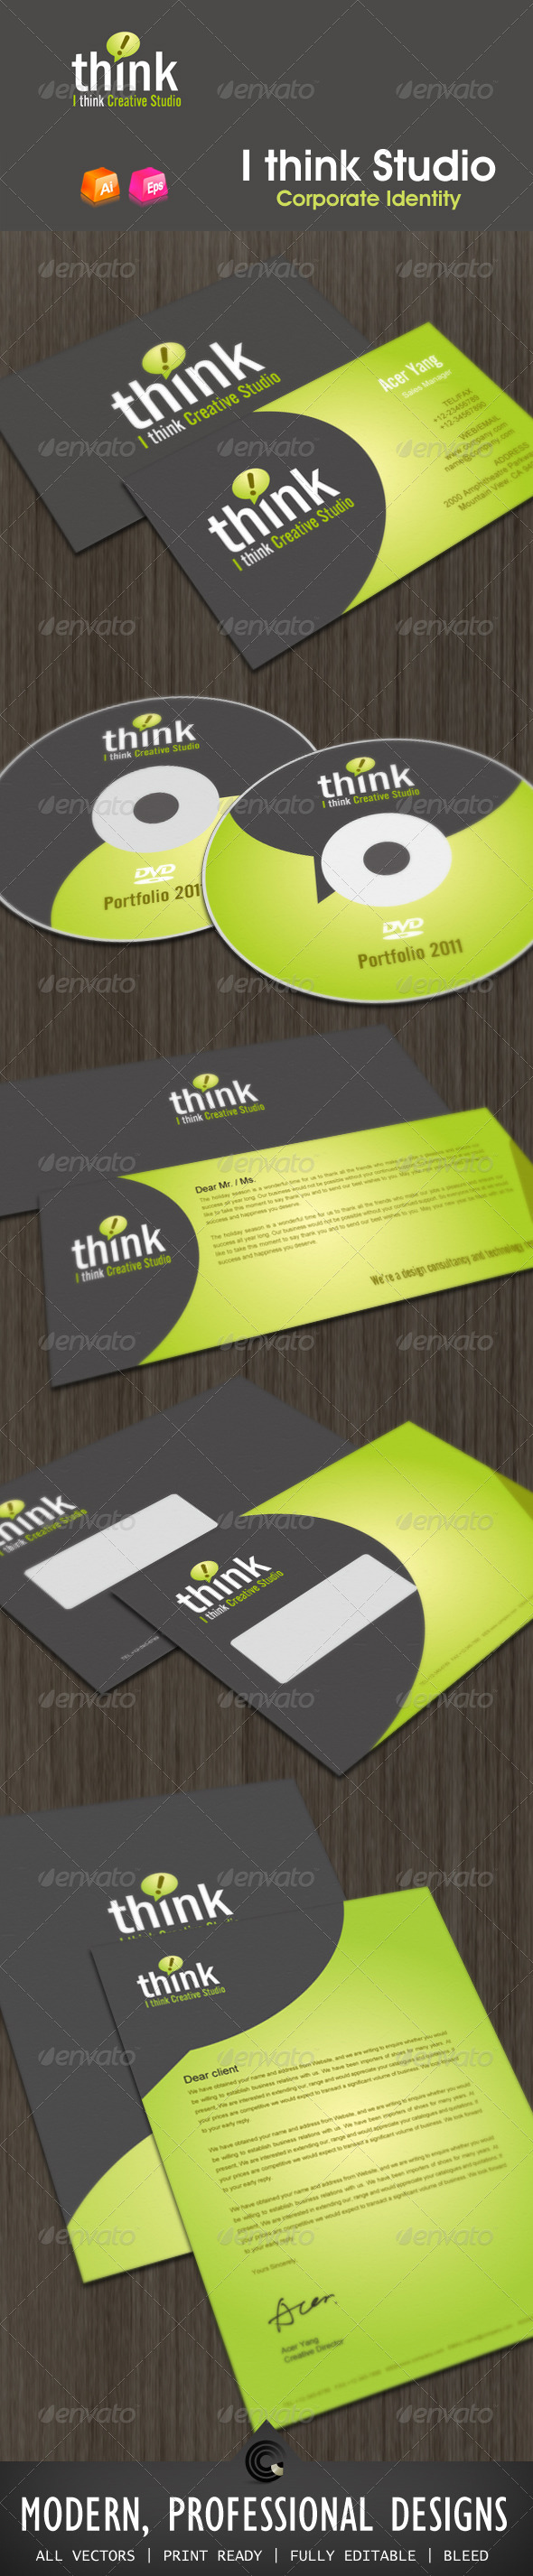 Ithink Studio Corporate Identity - Stationery Print Templates